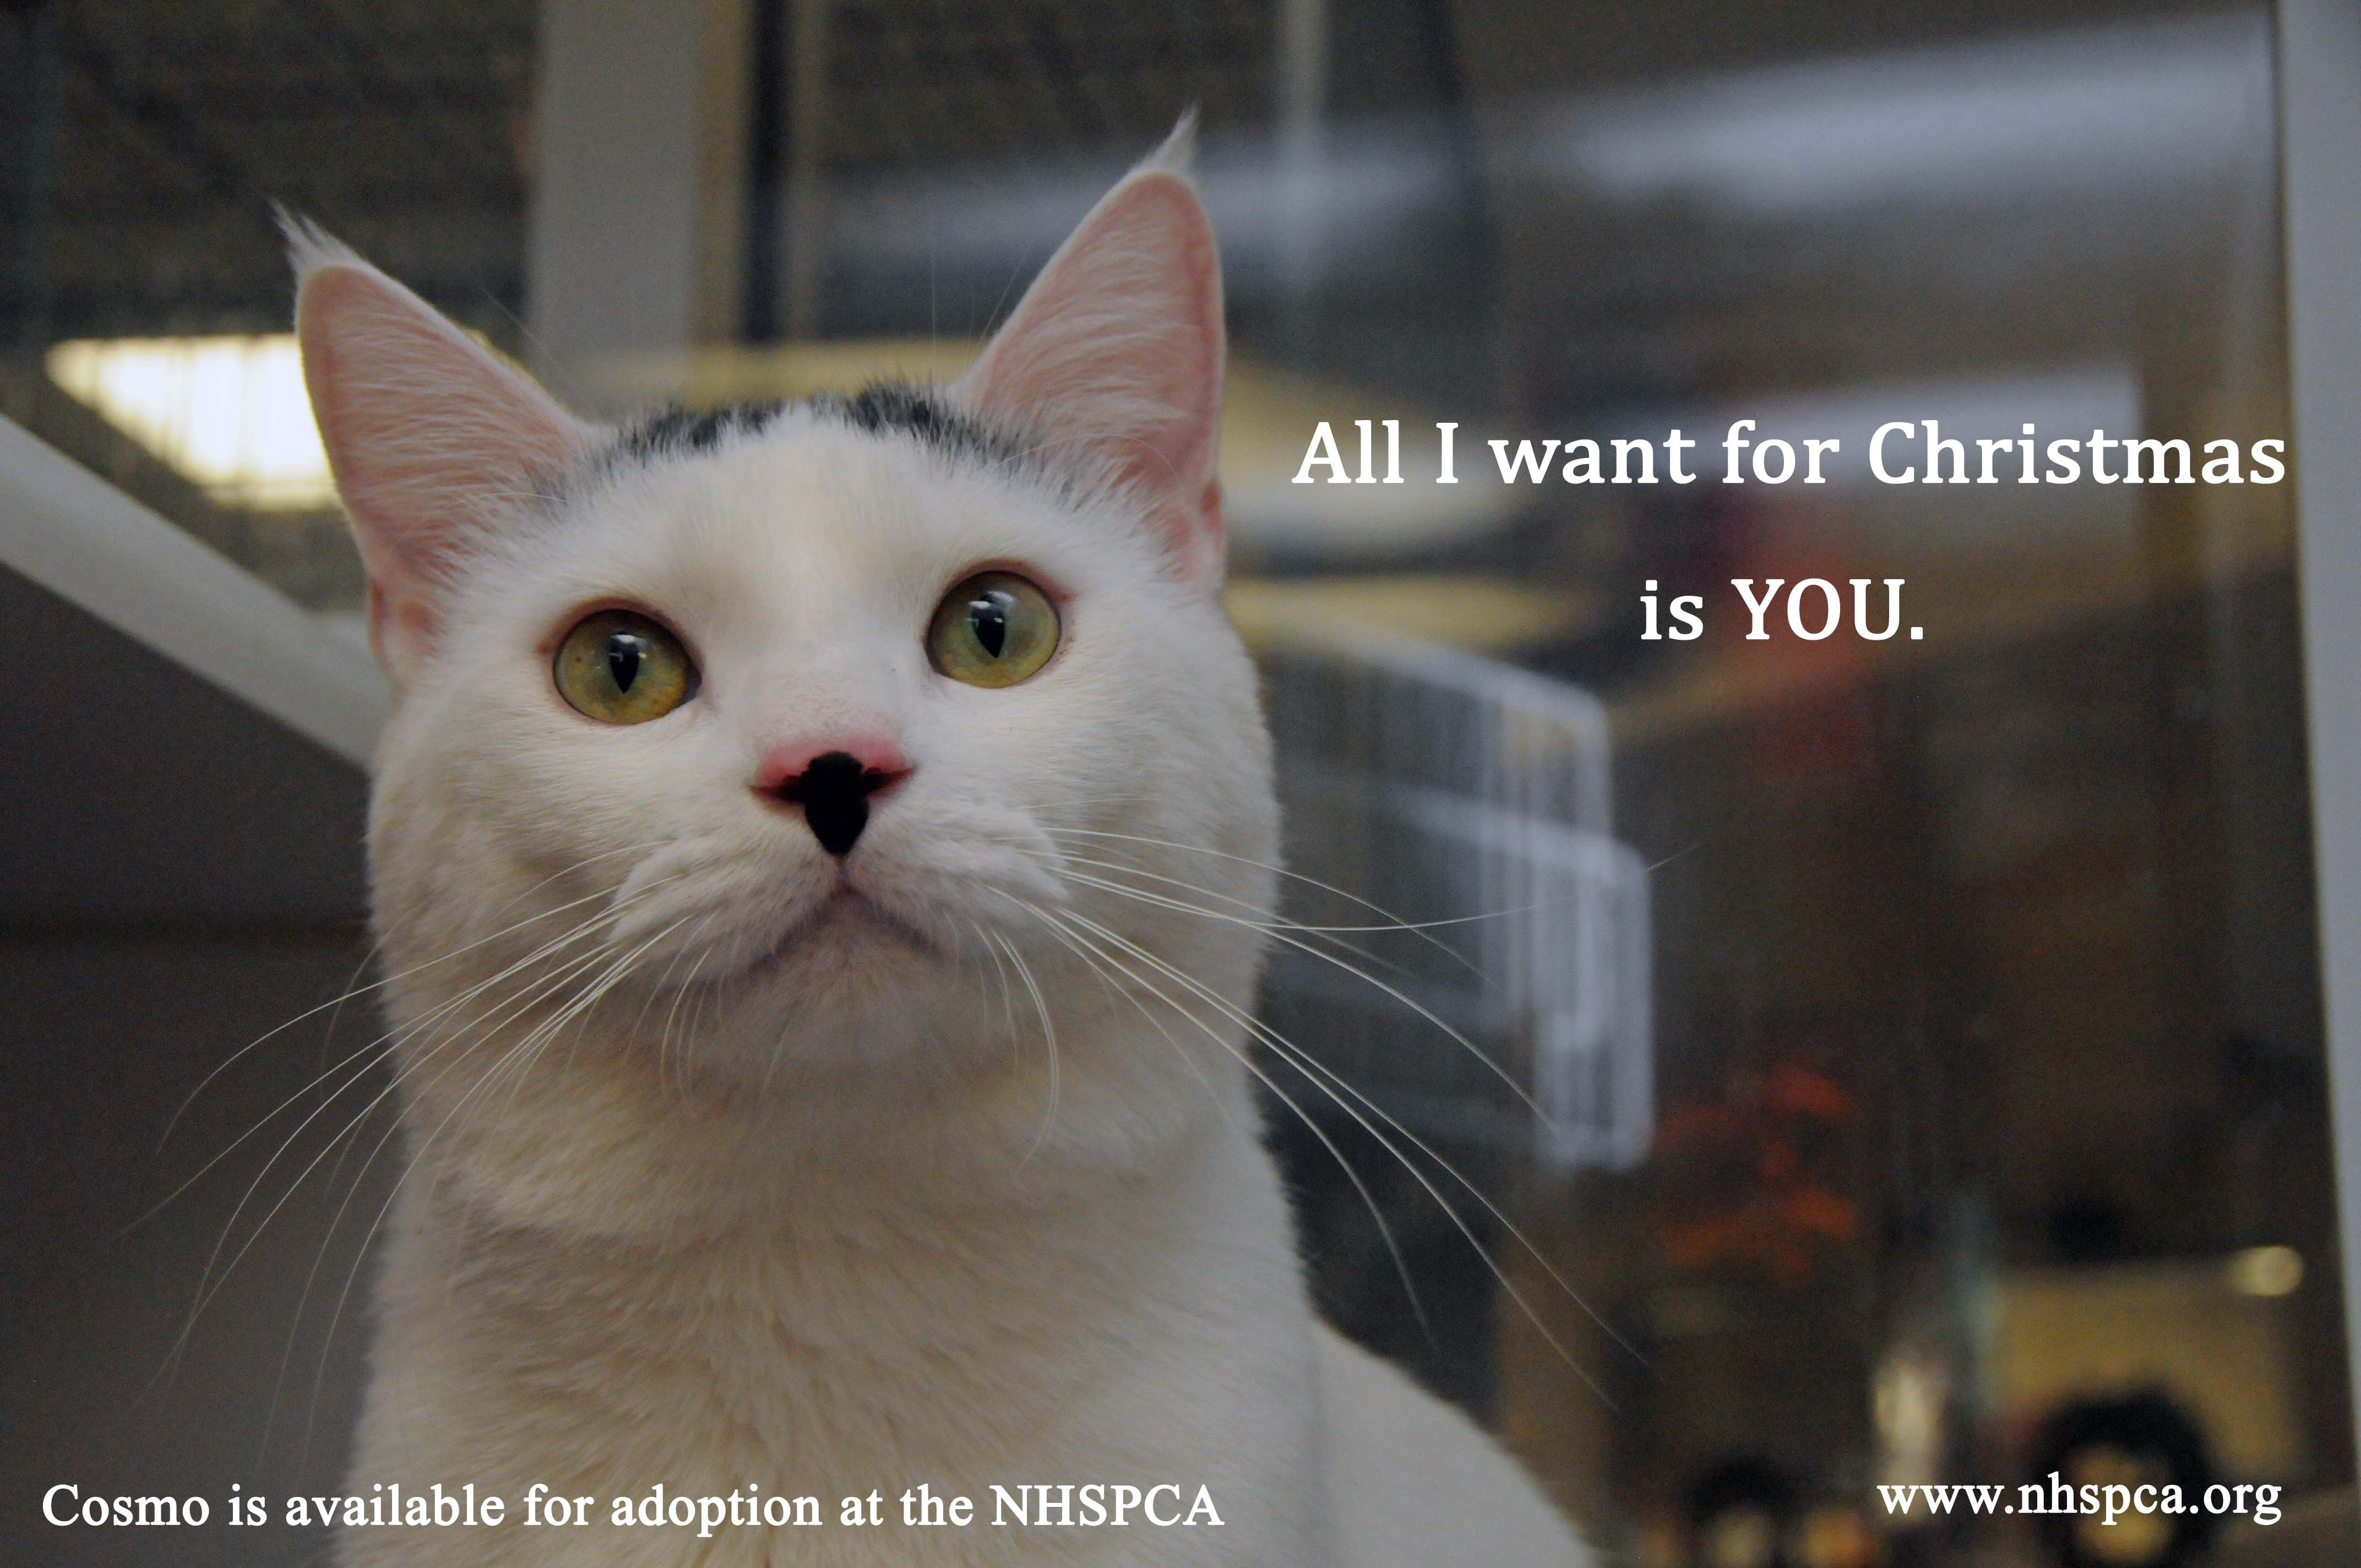 Pick Your Cat, Pick Your Price! Now through December 23